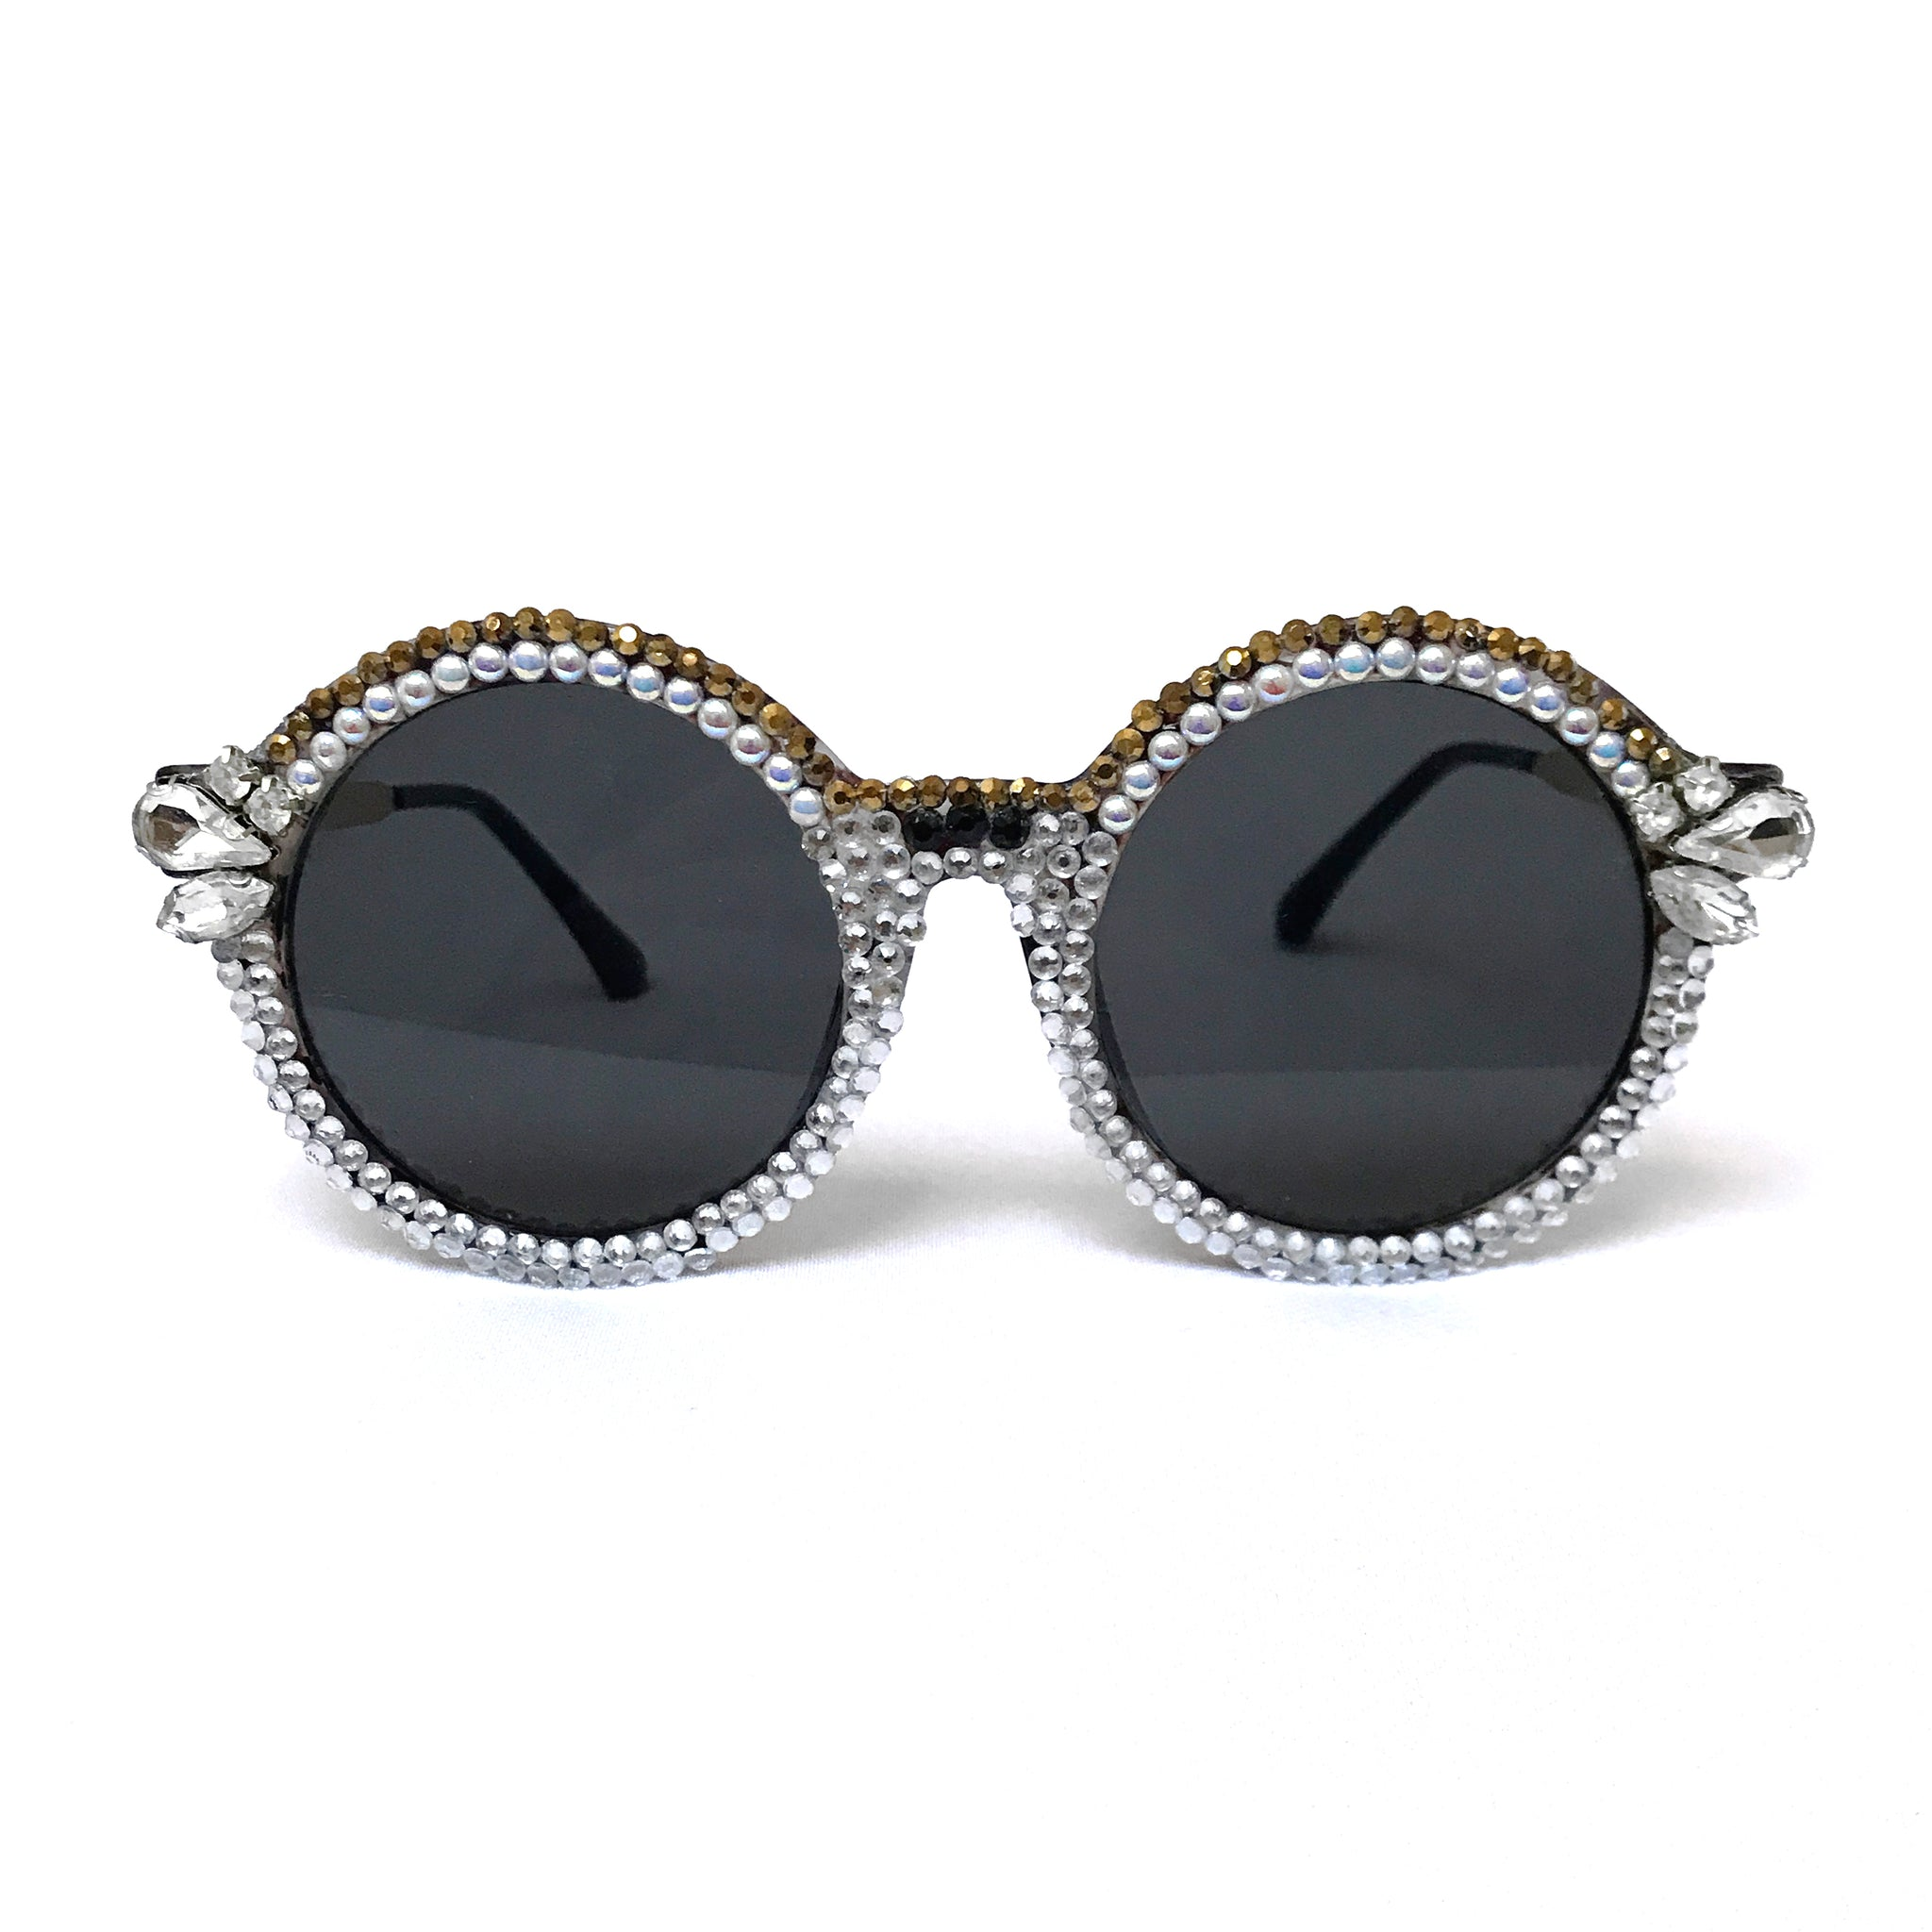 Crystal Deco Black and Gold Sunglasses